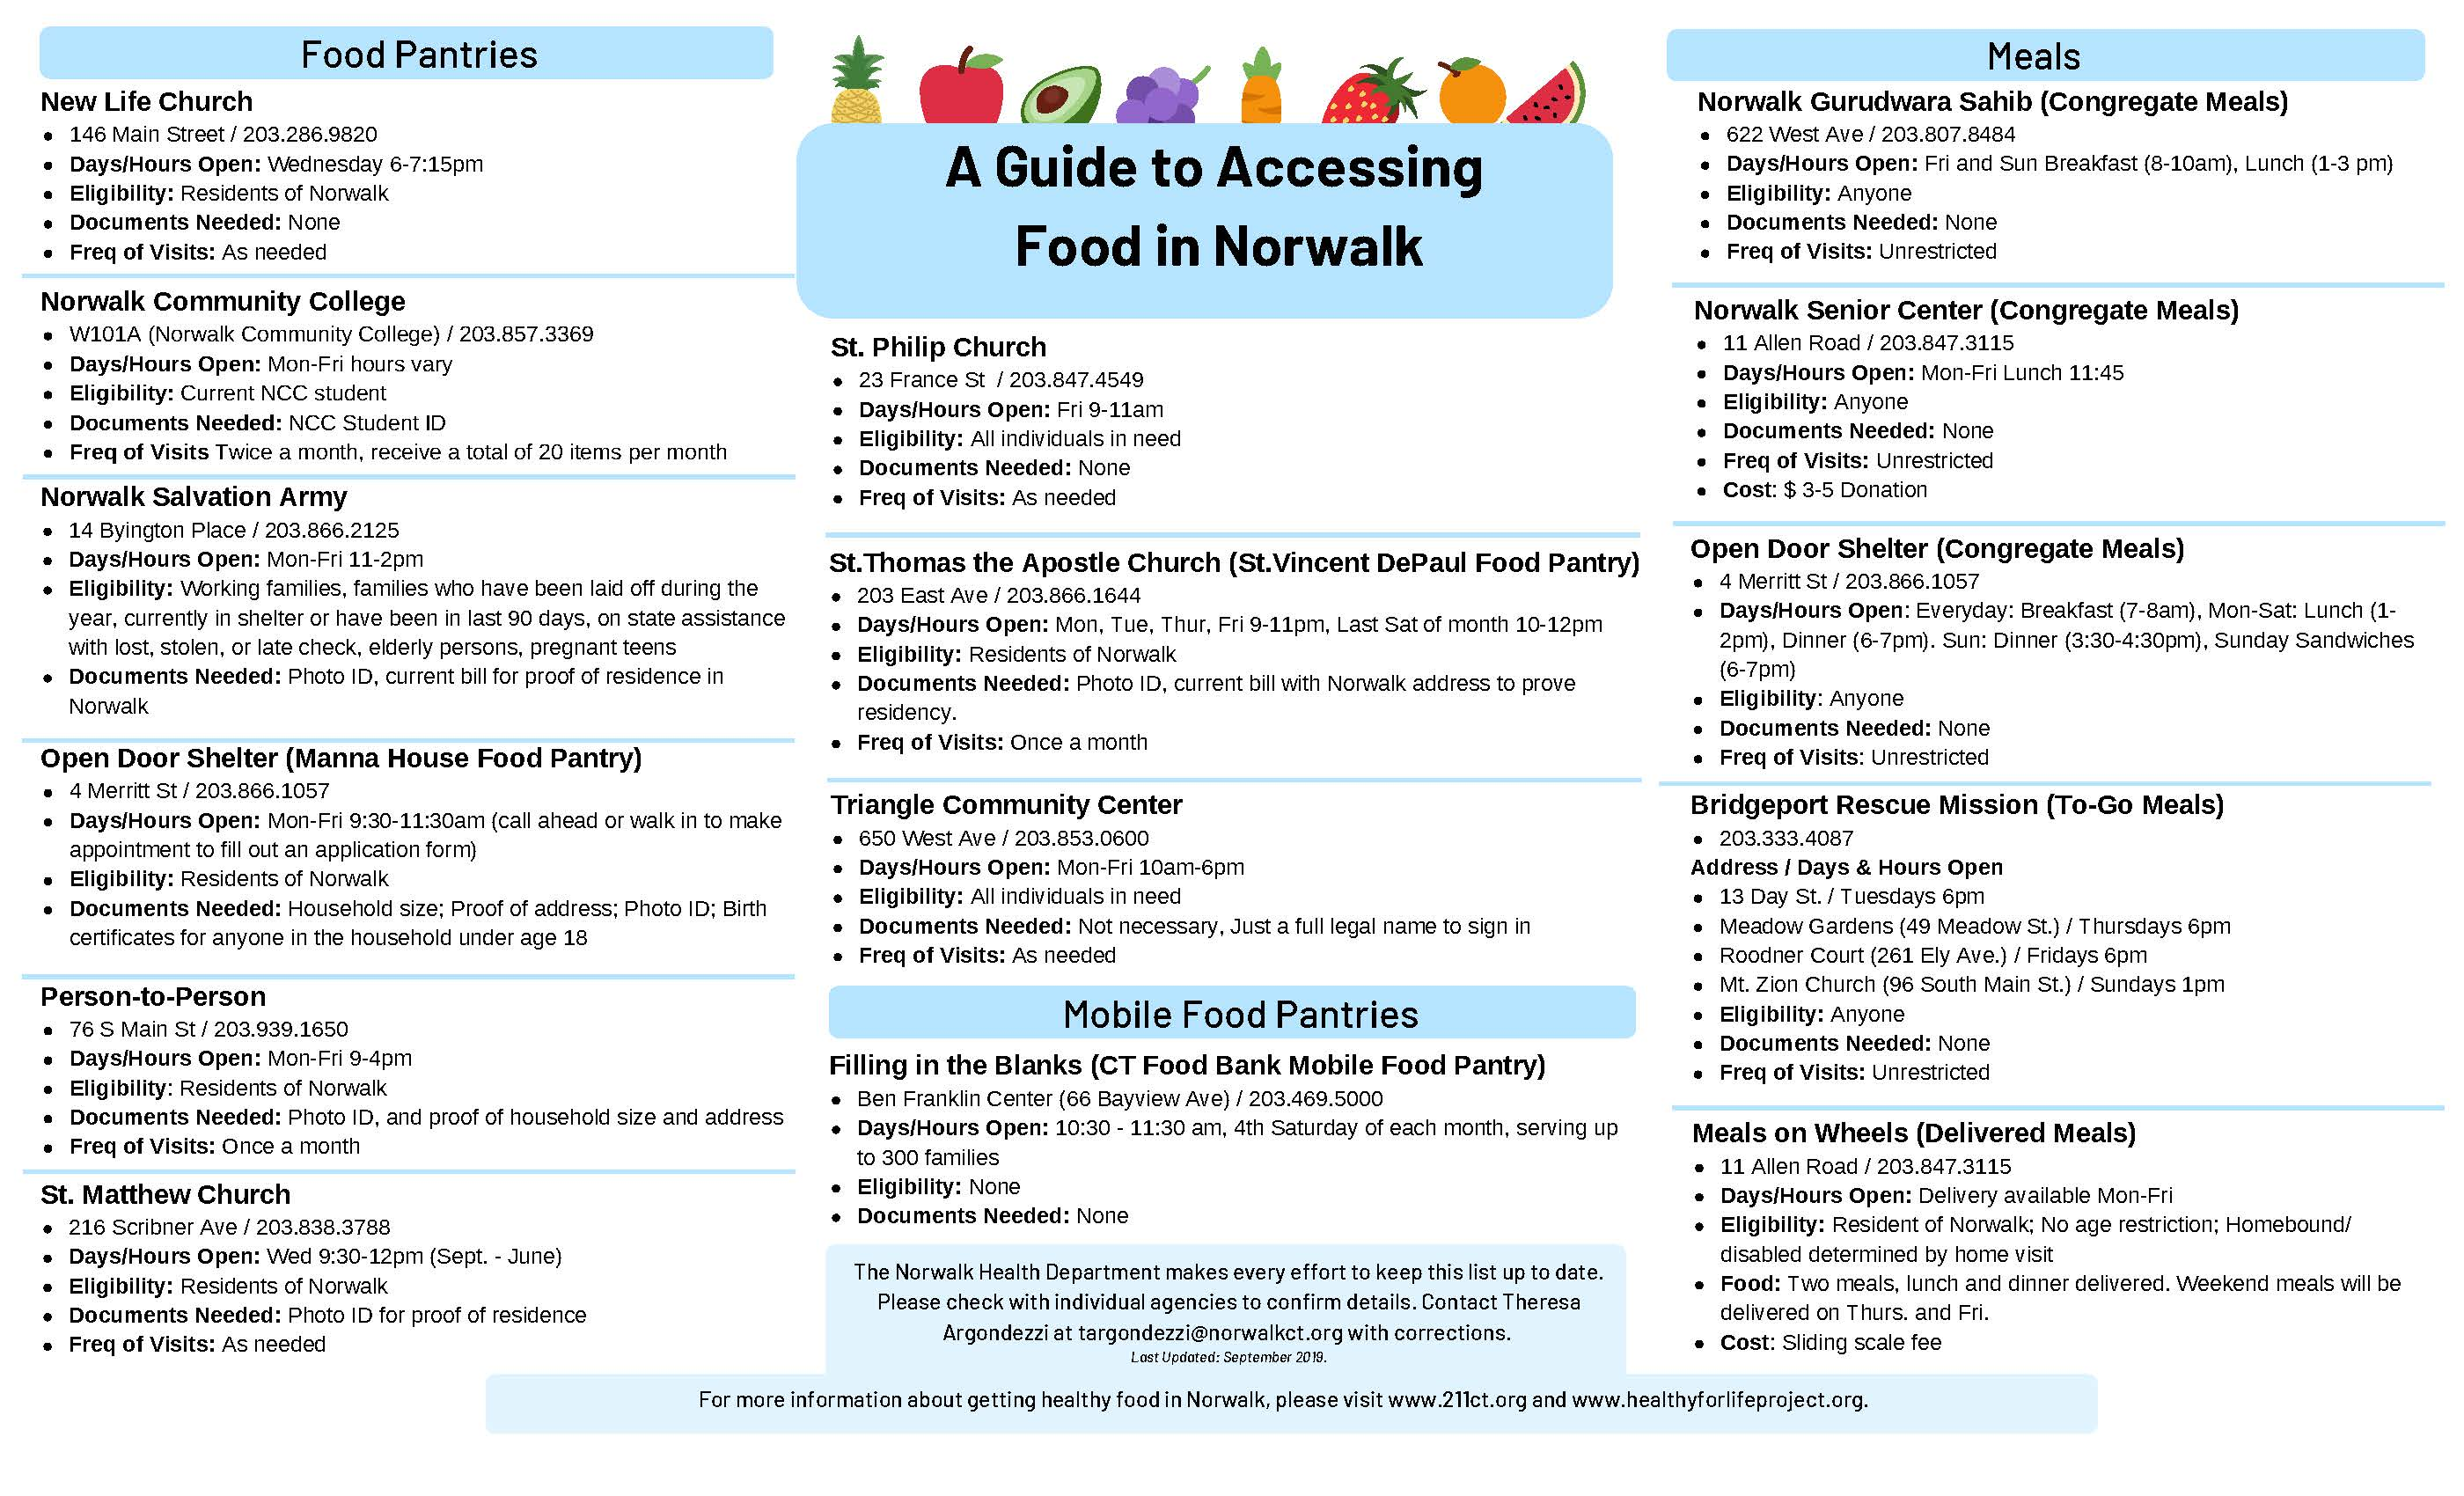 A Guide to Accessing Food in Norwalk_English_Sept 2019